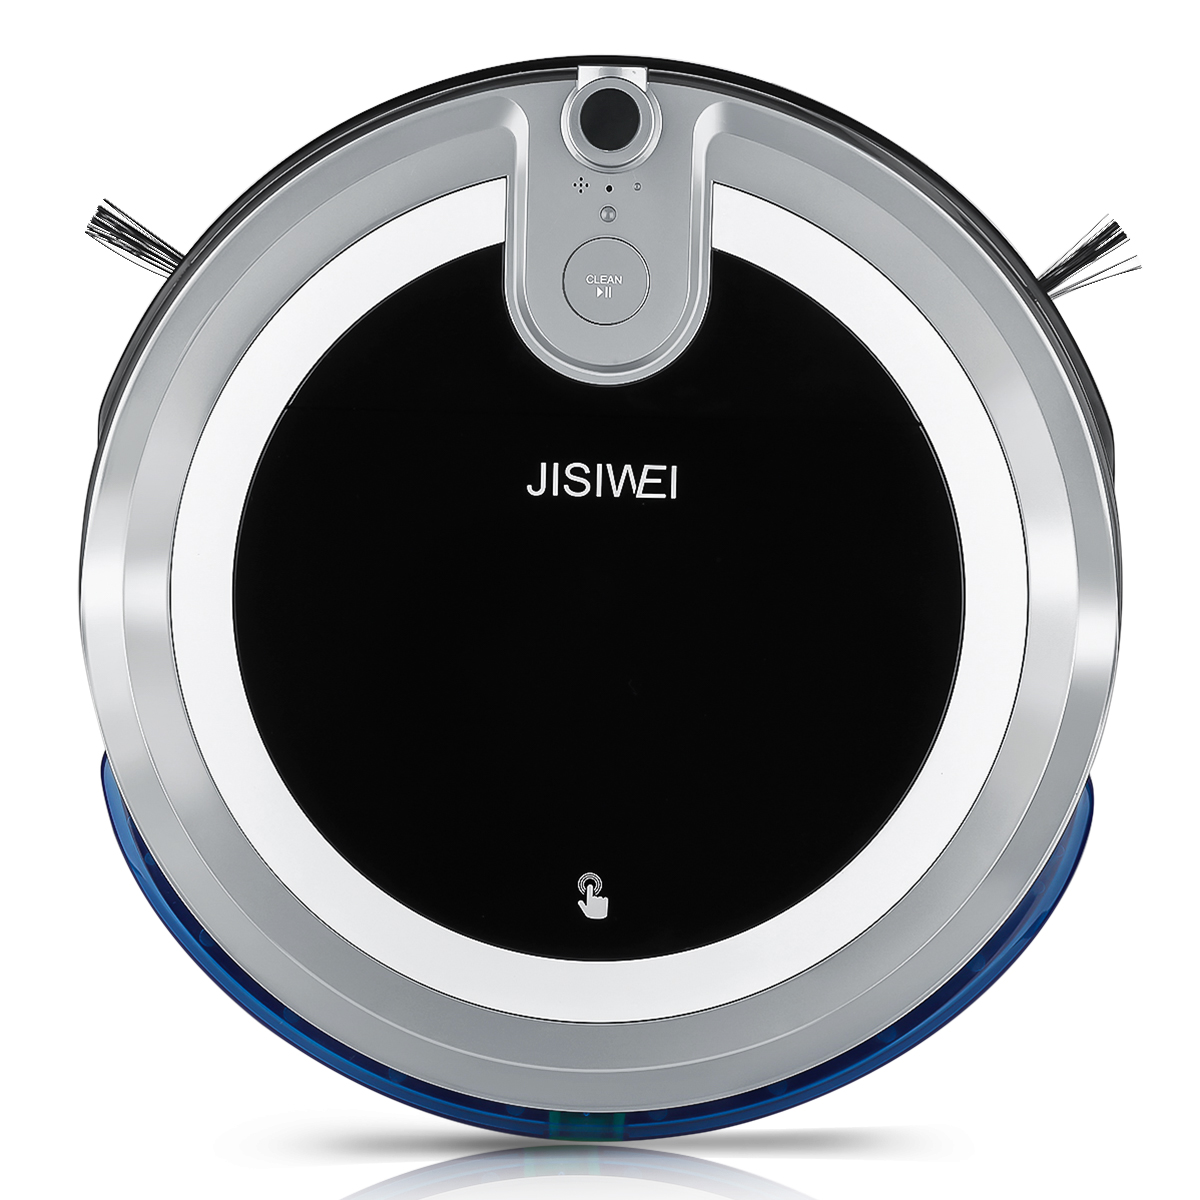 JISIWEI Robotic Vacuum Cleaning APP Control Smart Cleaner i3 with HD Camera